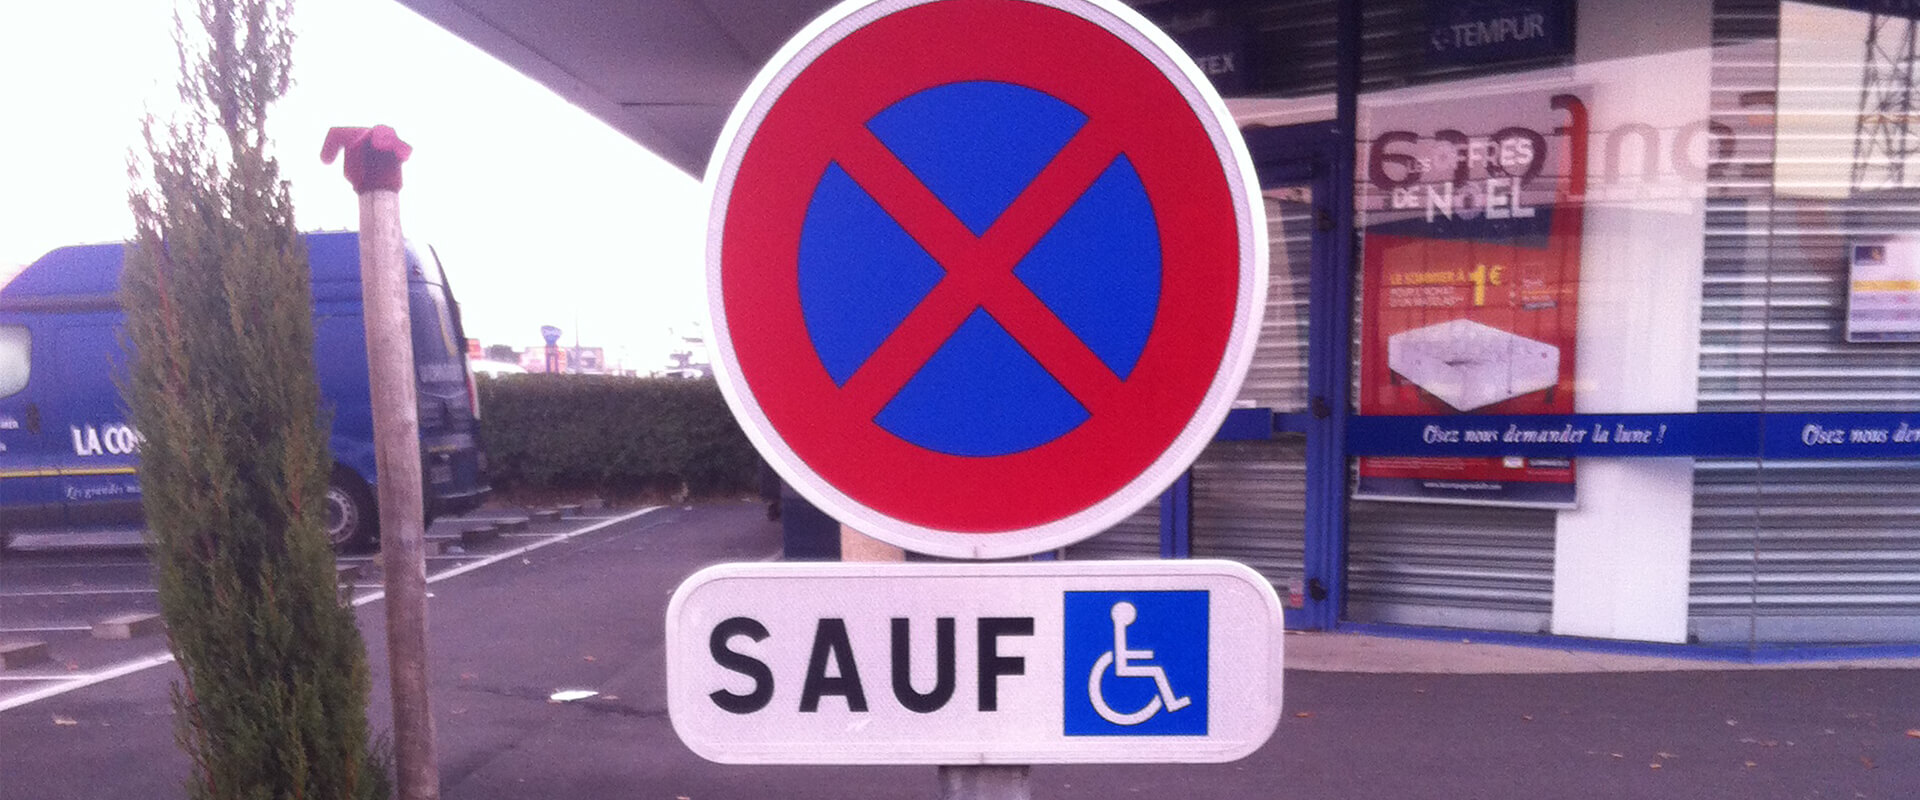 sauf-sign-slider-perigny